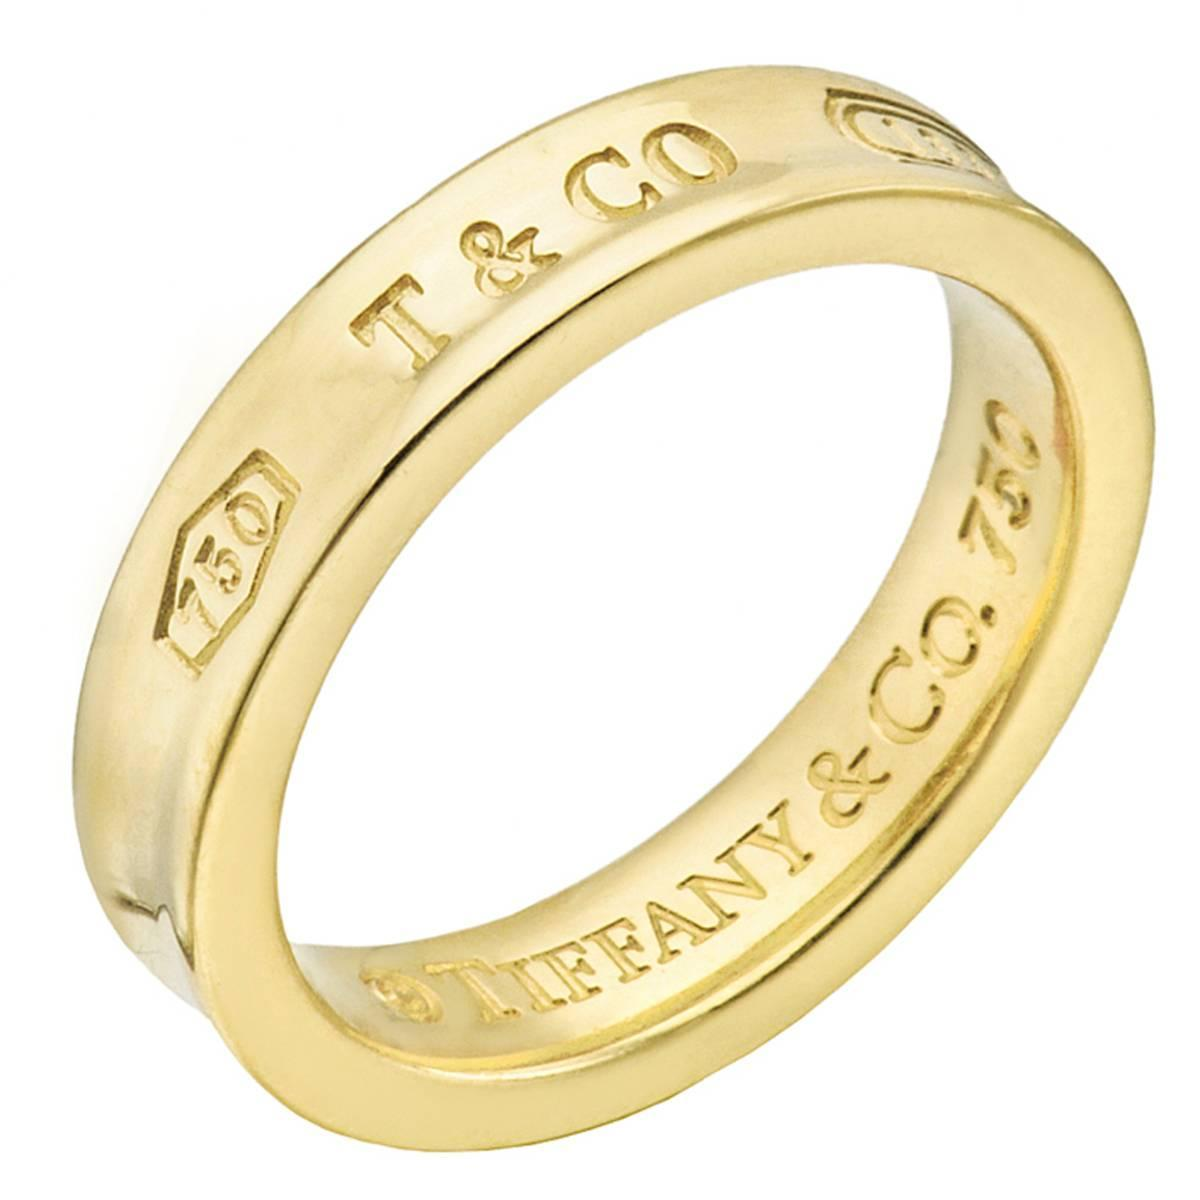 and co 1837 wide gold wedding band ring for sale